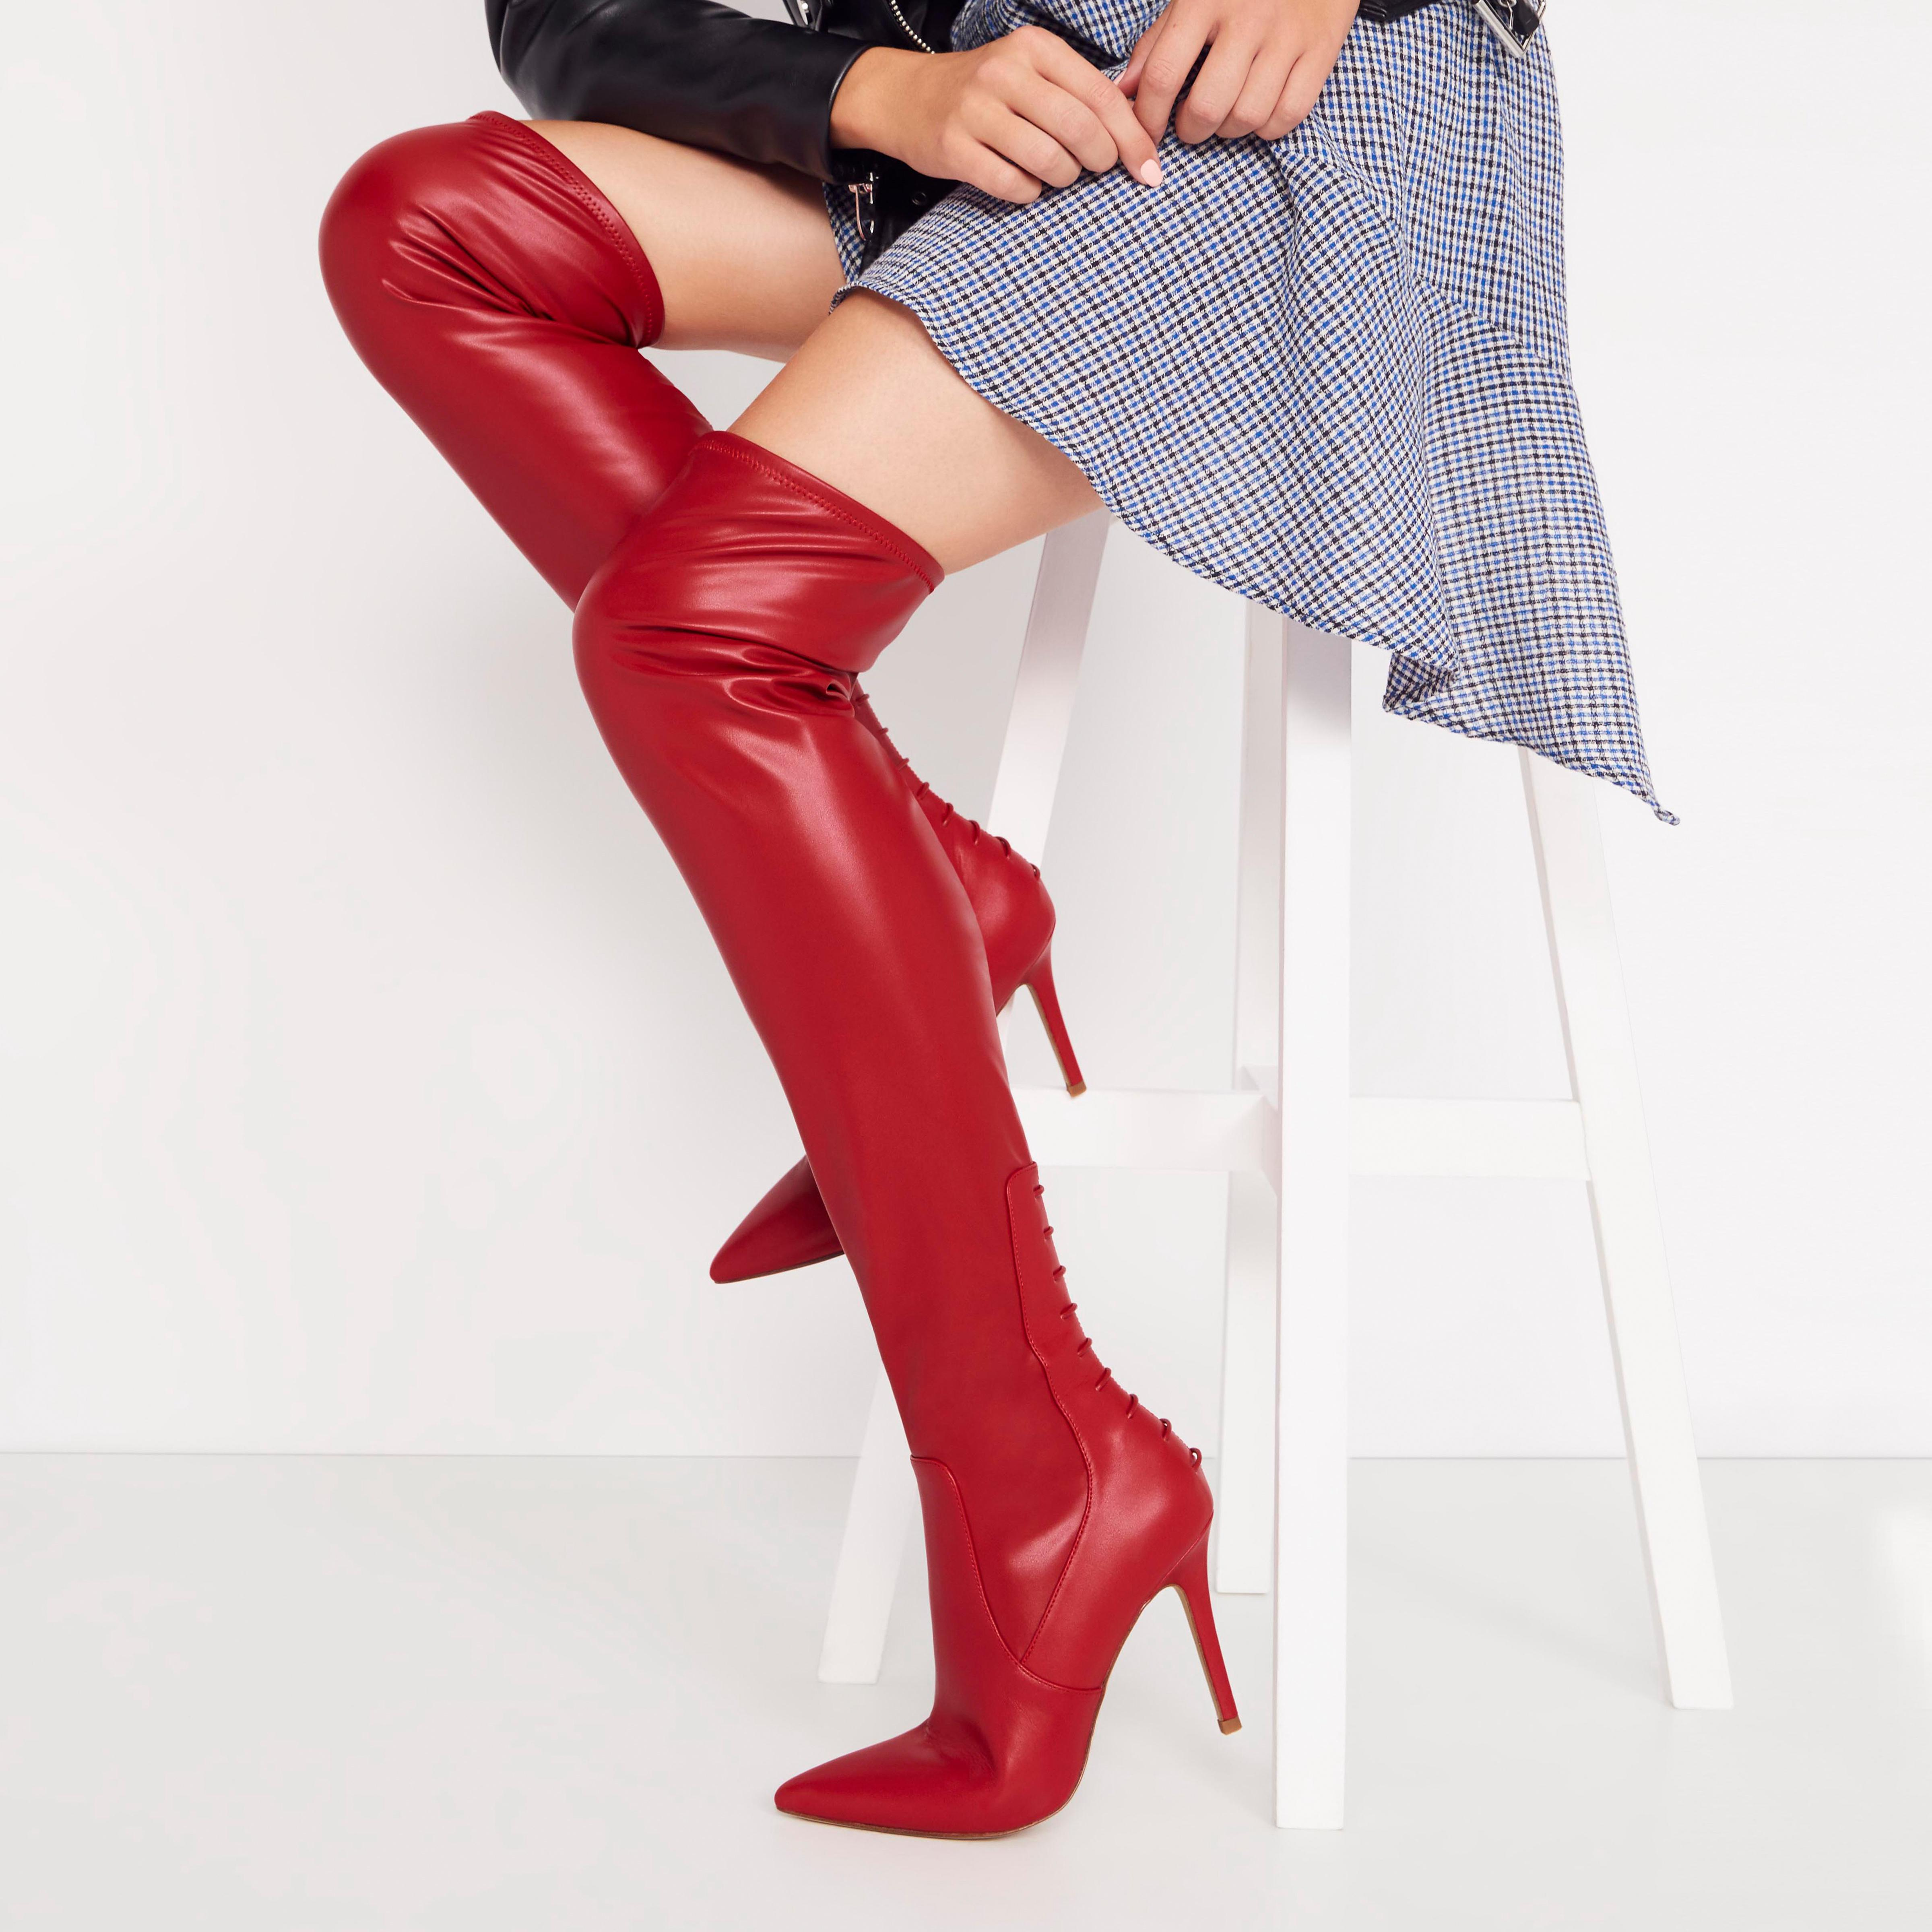 064873a4651 Lyst - ALDO Mereallyra in Red